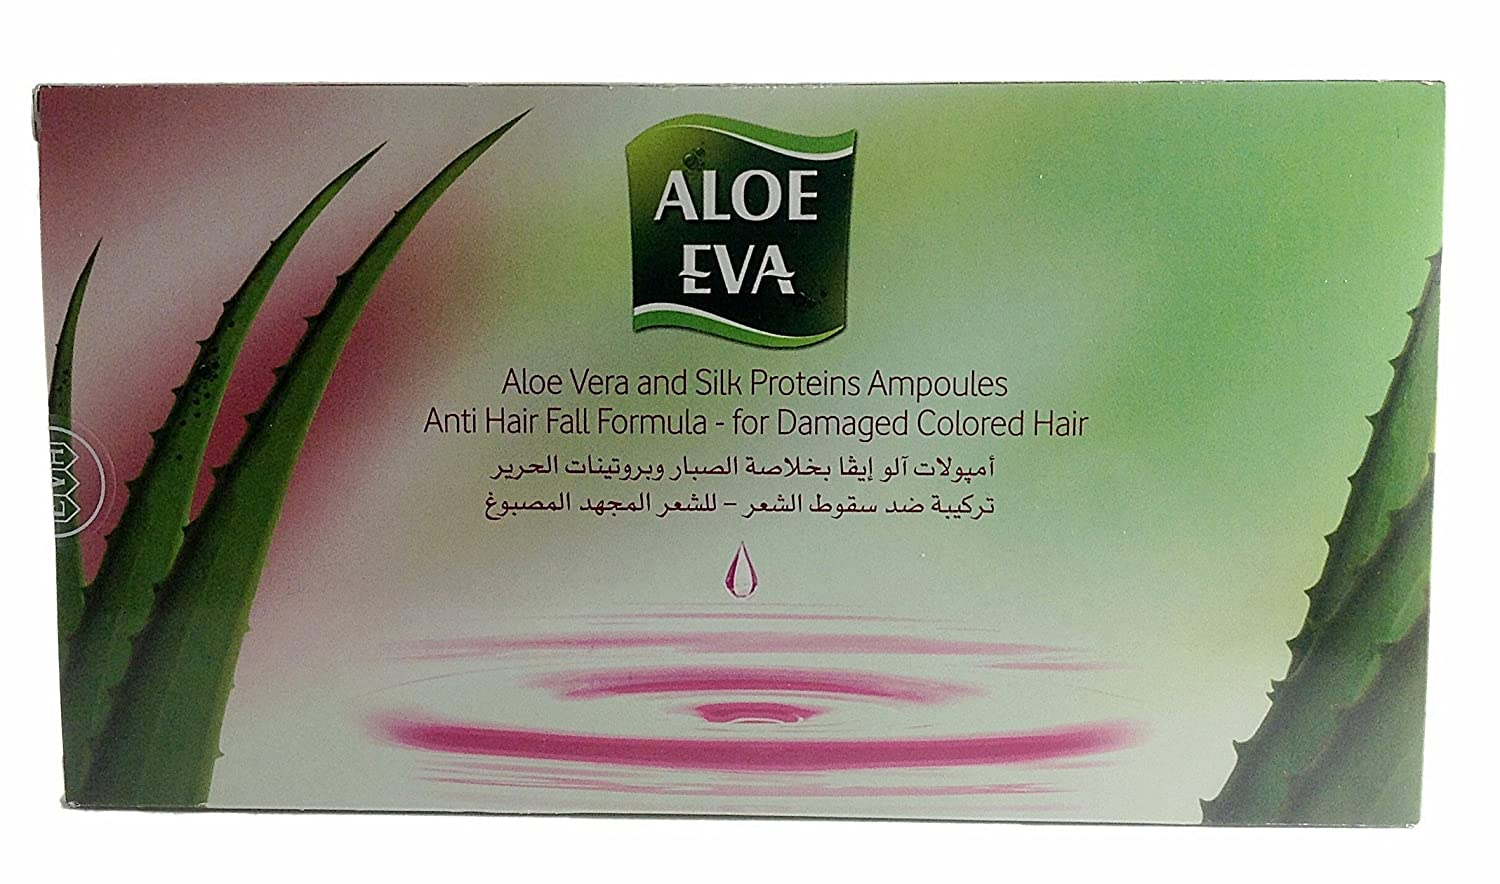 Aloe in ampoules